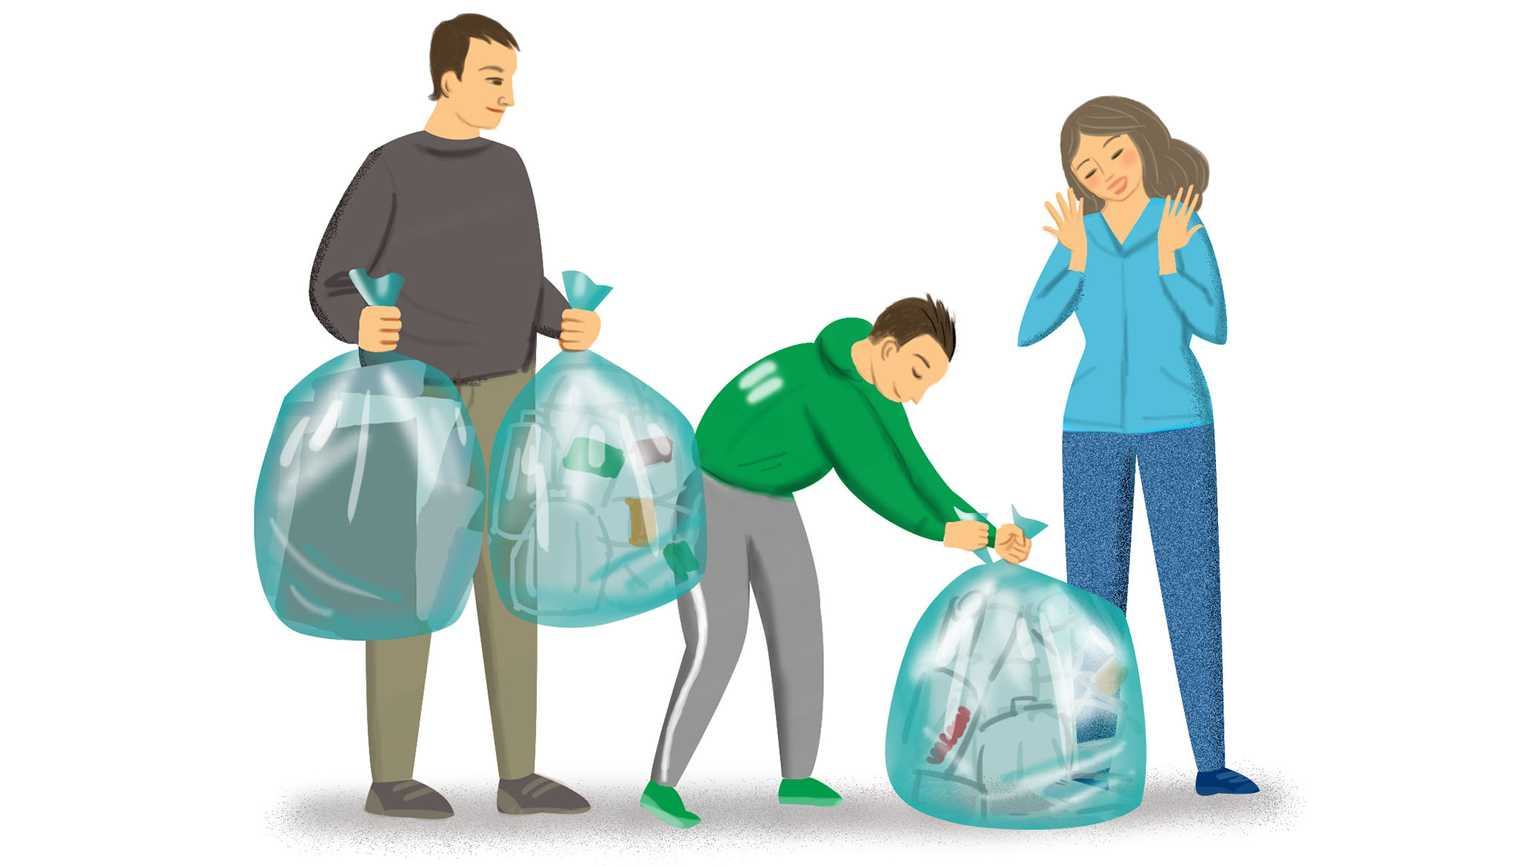 Strangers helping each other recycle.